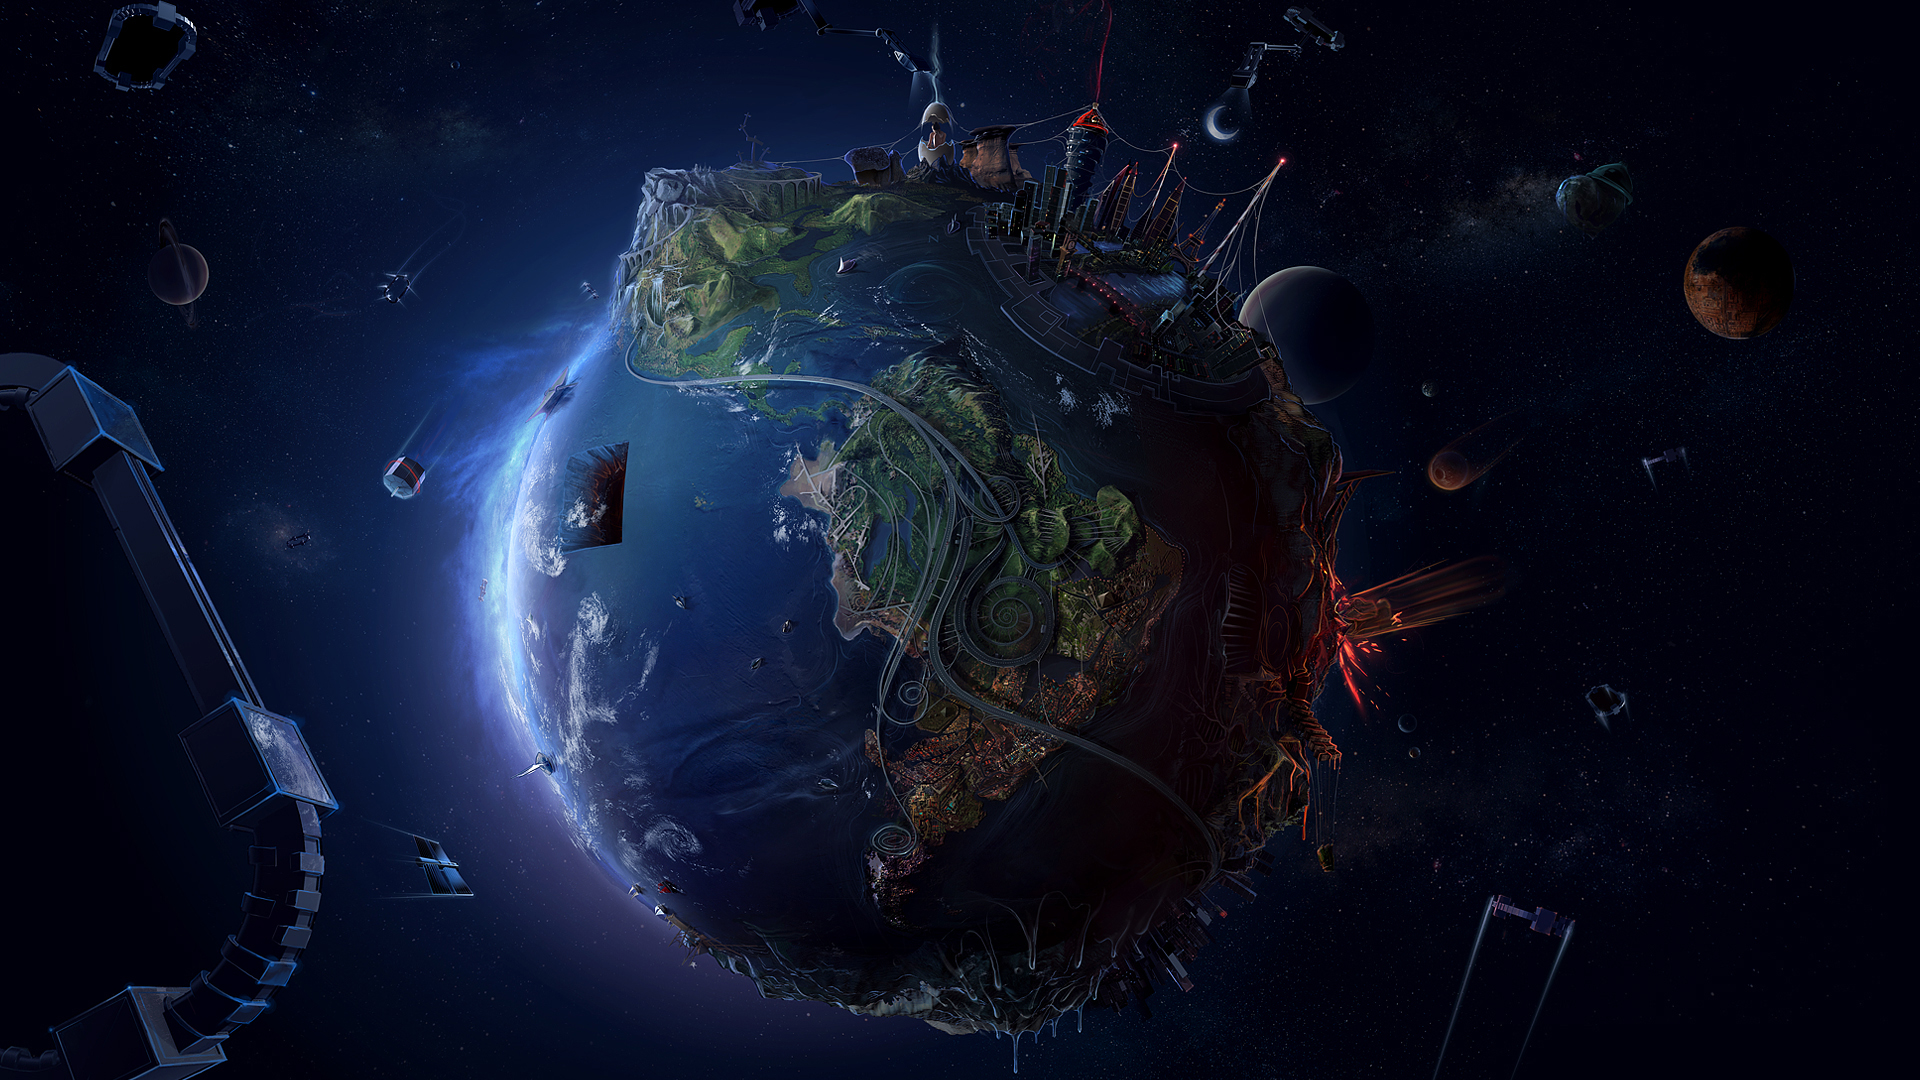 hd wallpapers 1080p space wallpapers55com   Best Wallpapers for PCs 1920x1080